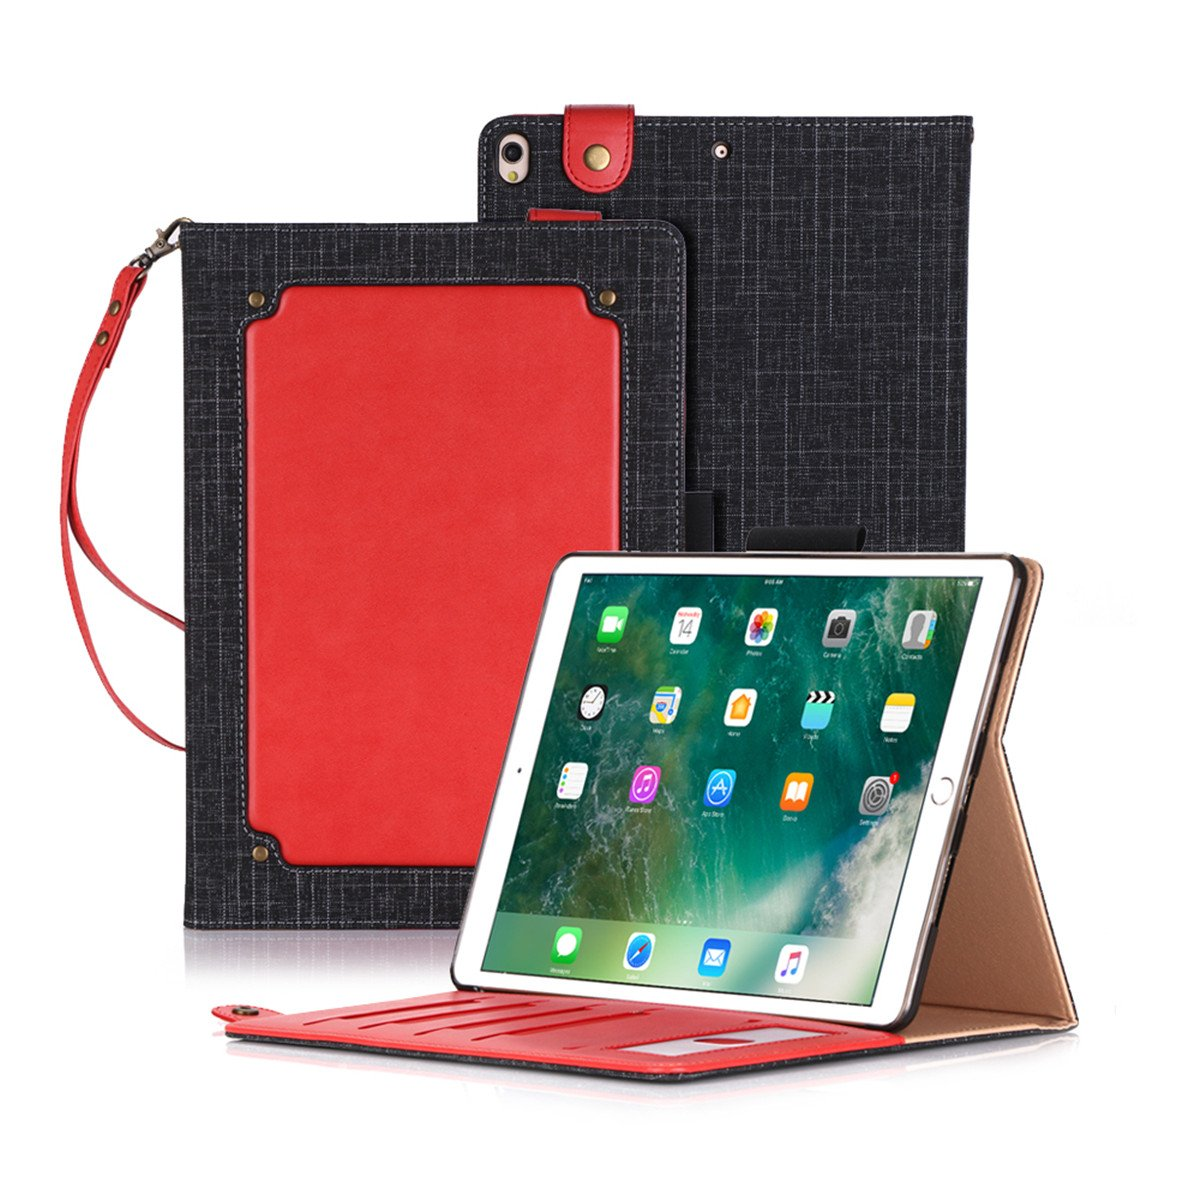 Codream iPad Pro 10.5 Inch 2017 Case, iPad Pro 10.5 Inch 2017 Leather Wallet Case Book Design with Flip Cover and Stand [Credit Card Slot] Cover Case for iPad Pro 10.5 Inch 2017 - Red